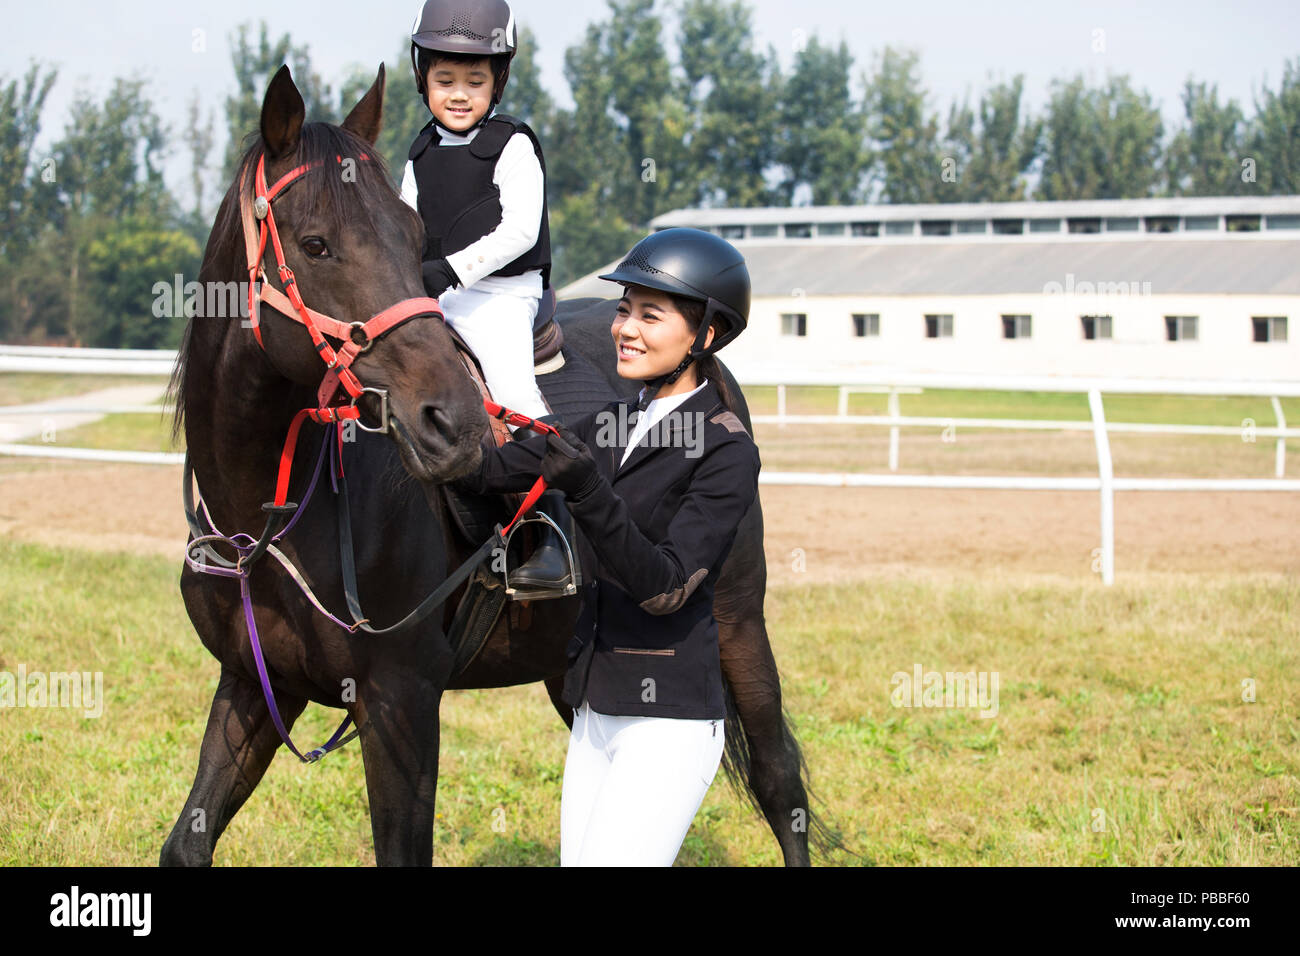 Mother And Daughter On Horseback High Resolution Stock Photography And Images Alamy